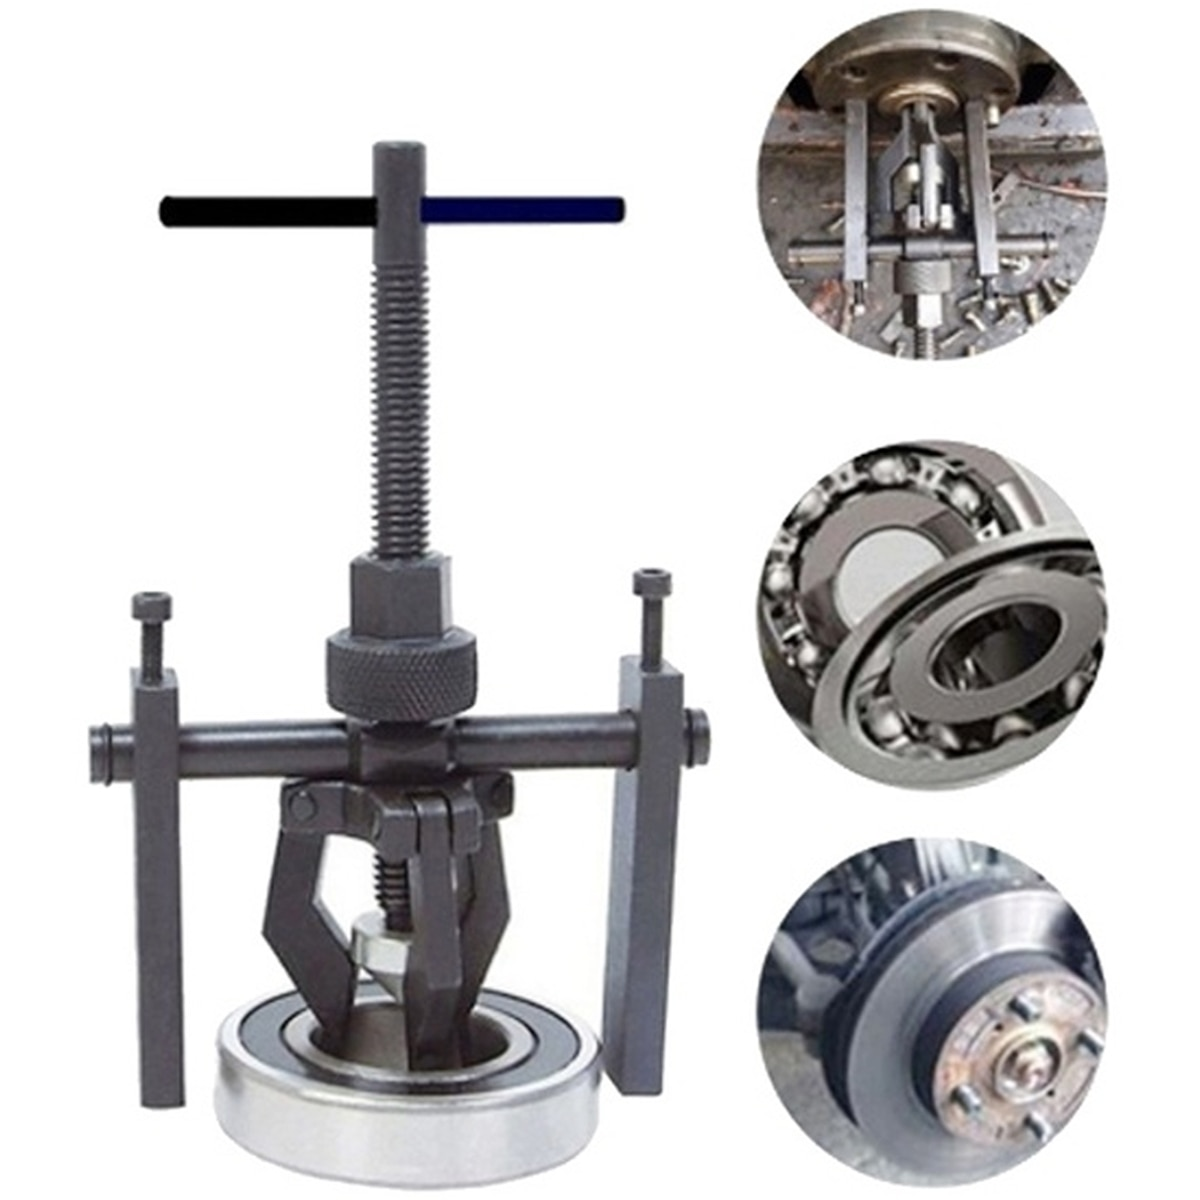 Car Auto Carbon Steel 3-jaw Inner Bearing Puller Gear Extractor Heavy Duty Automotive Machine Tool K